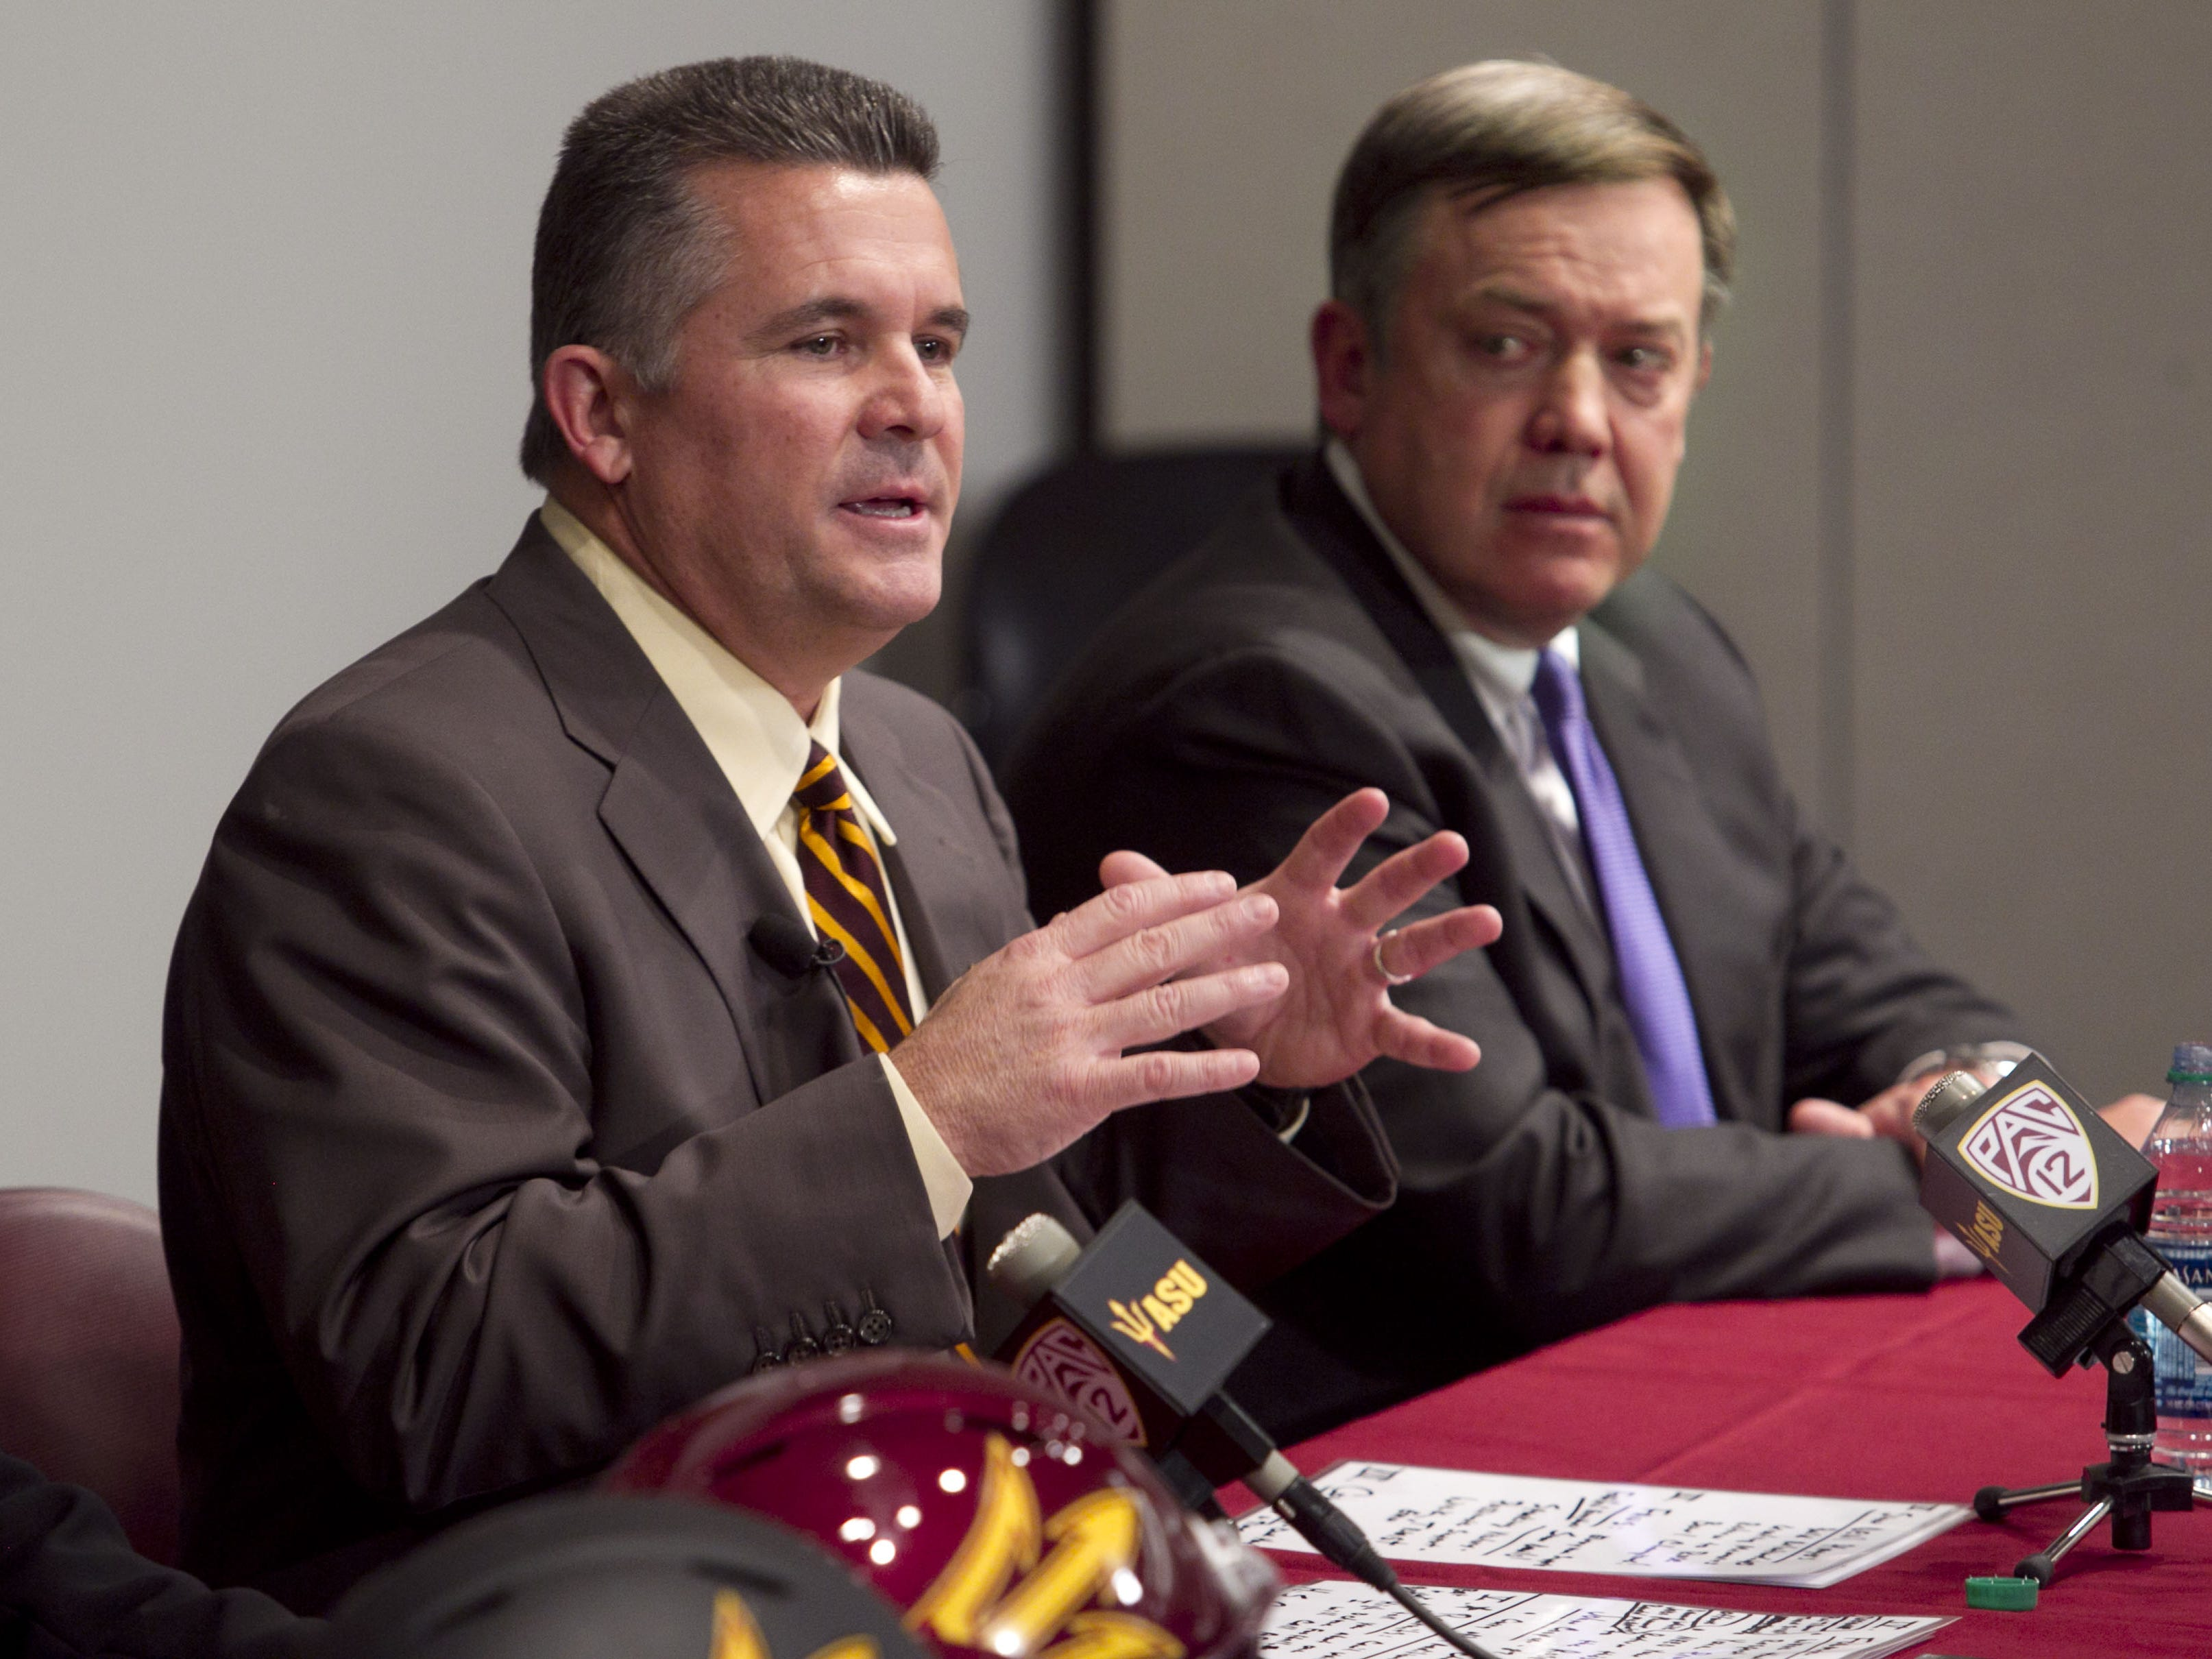 ASU President Michael Crow (right) listens as a former ASU head football coach, Todd Graham, speaks at an introductory press conference in 2011.